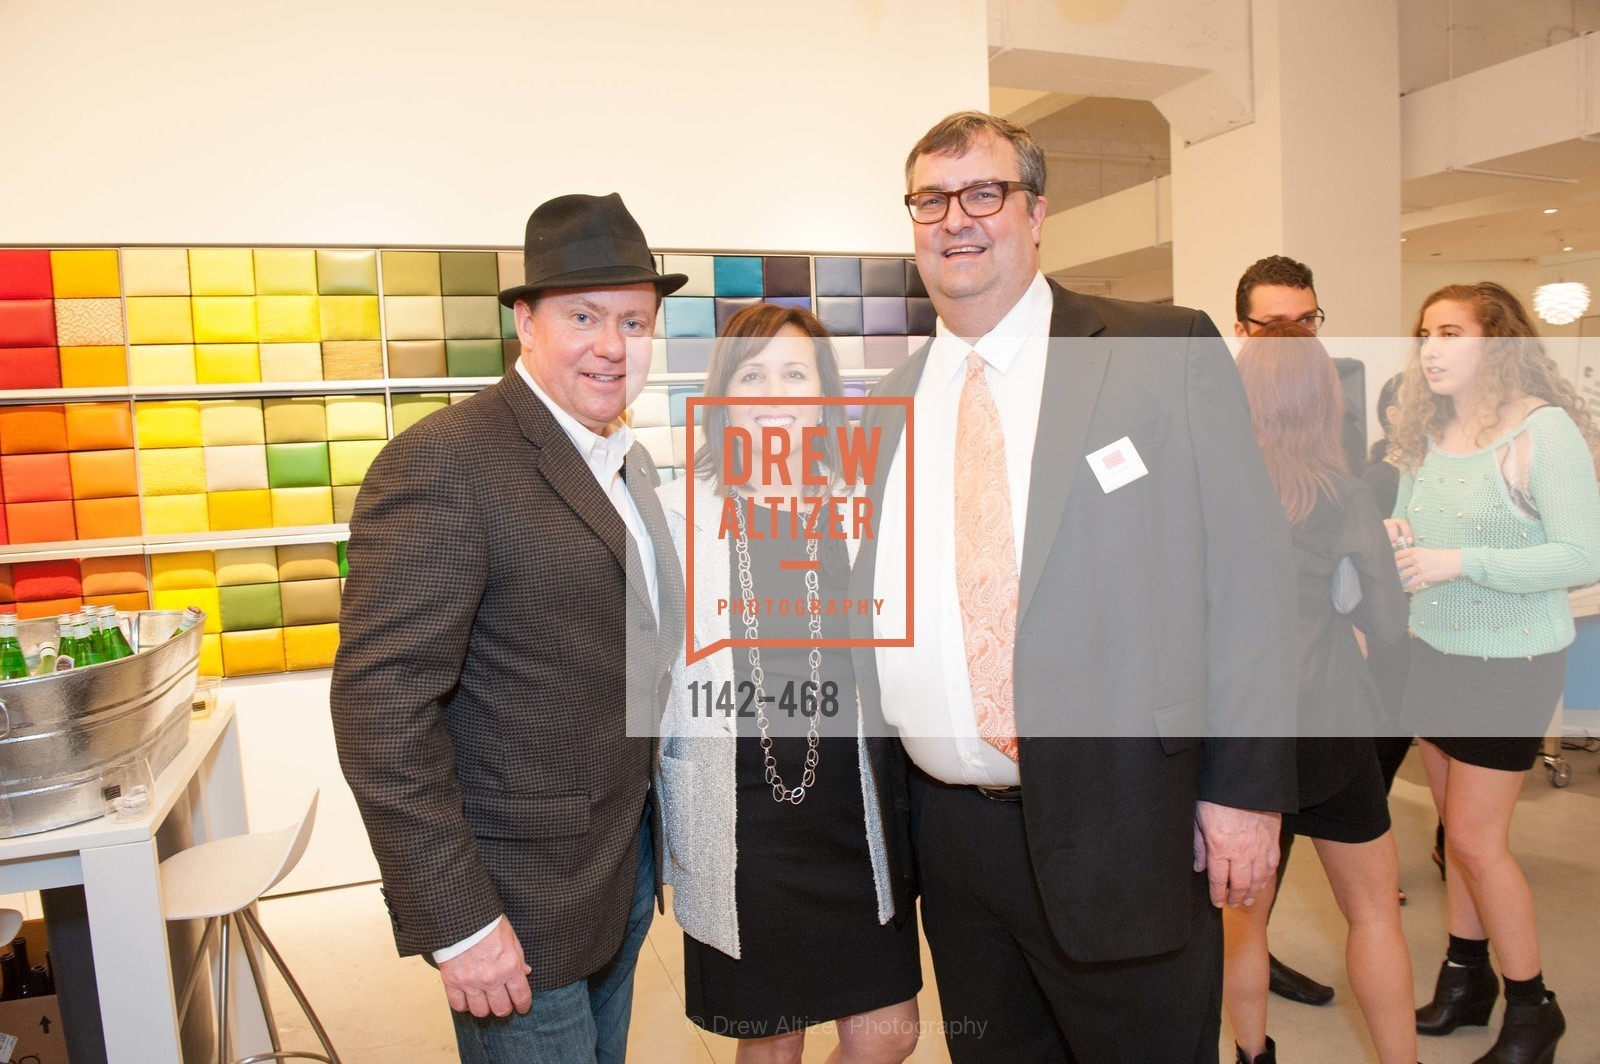 Jay Leupp, Heidi Leupp, John McPhee, DESIGN WITHIN REACH Studio Opening, US. US, January 21st, 2014,Drew Altizer, Drew Altizer Photography, full-service agency, private events, San Francisco photographer, photographer california